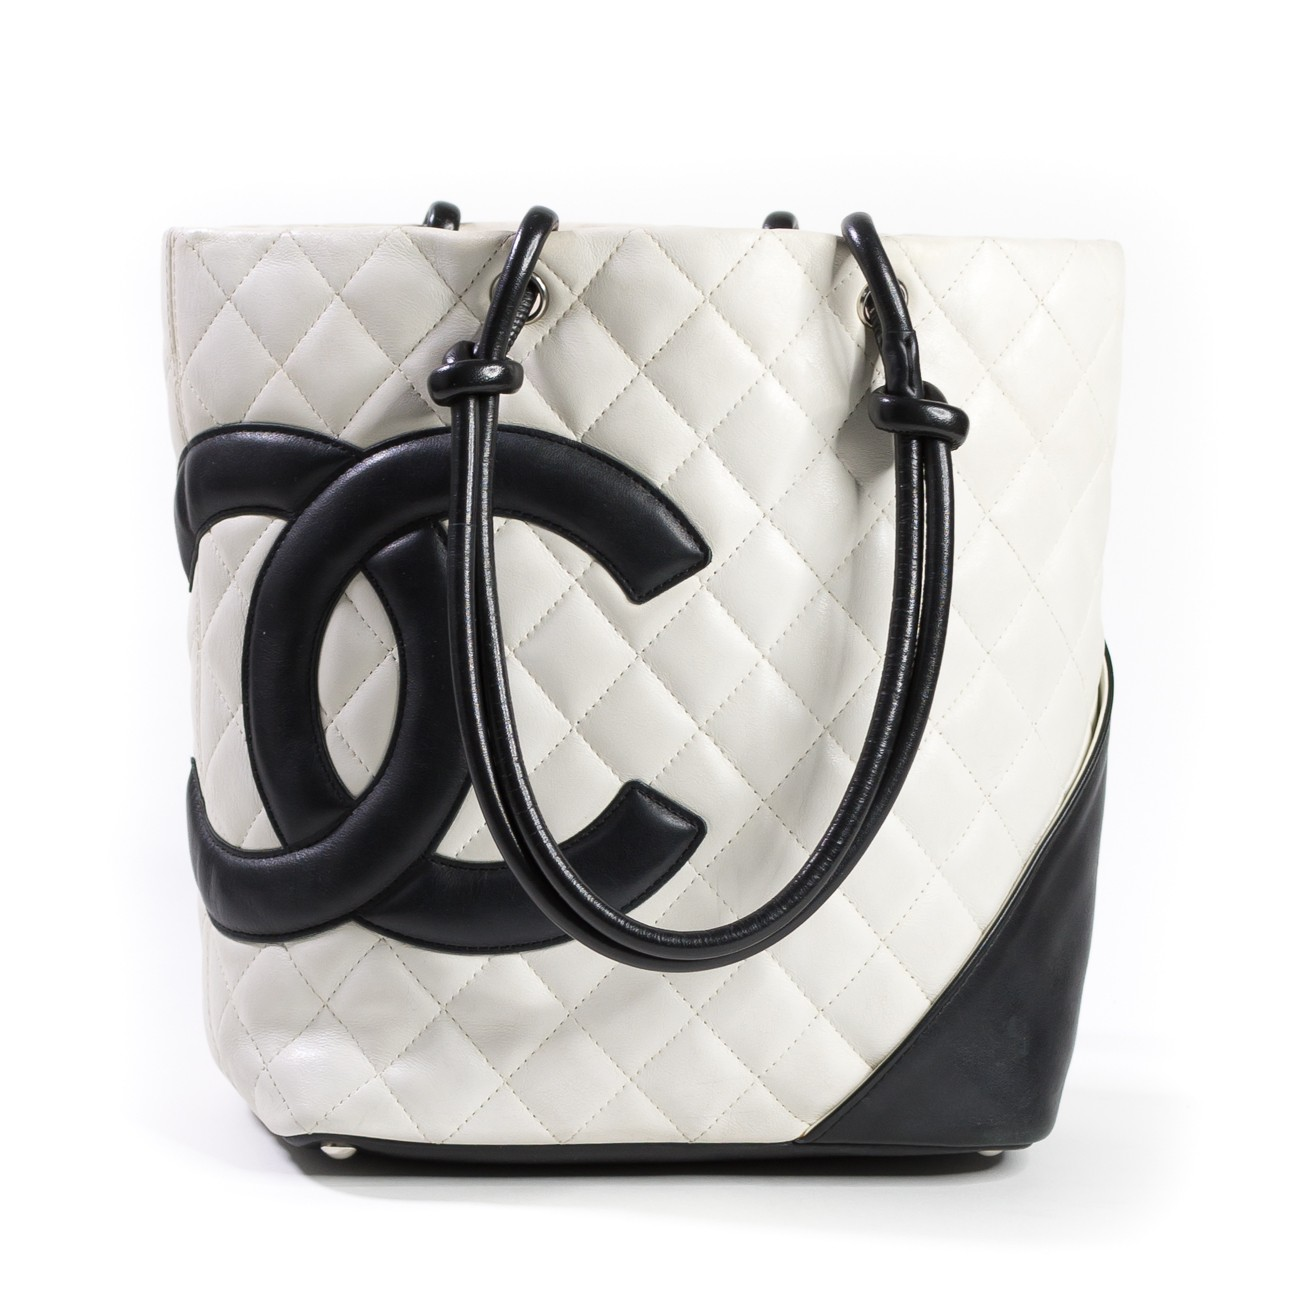 67a8befdc2 Chanel White/Black Quilted Ligne Cambon Small Tote Bag